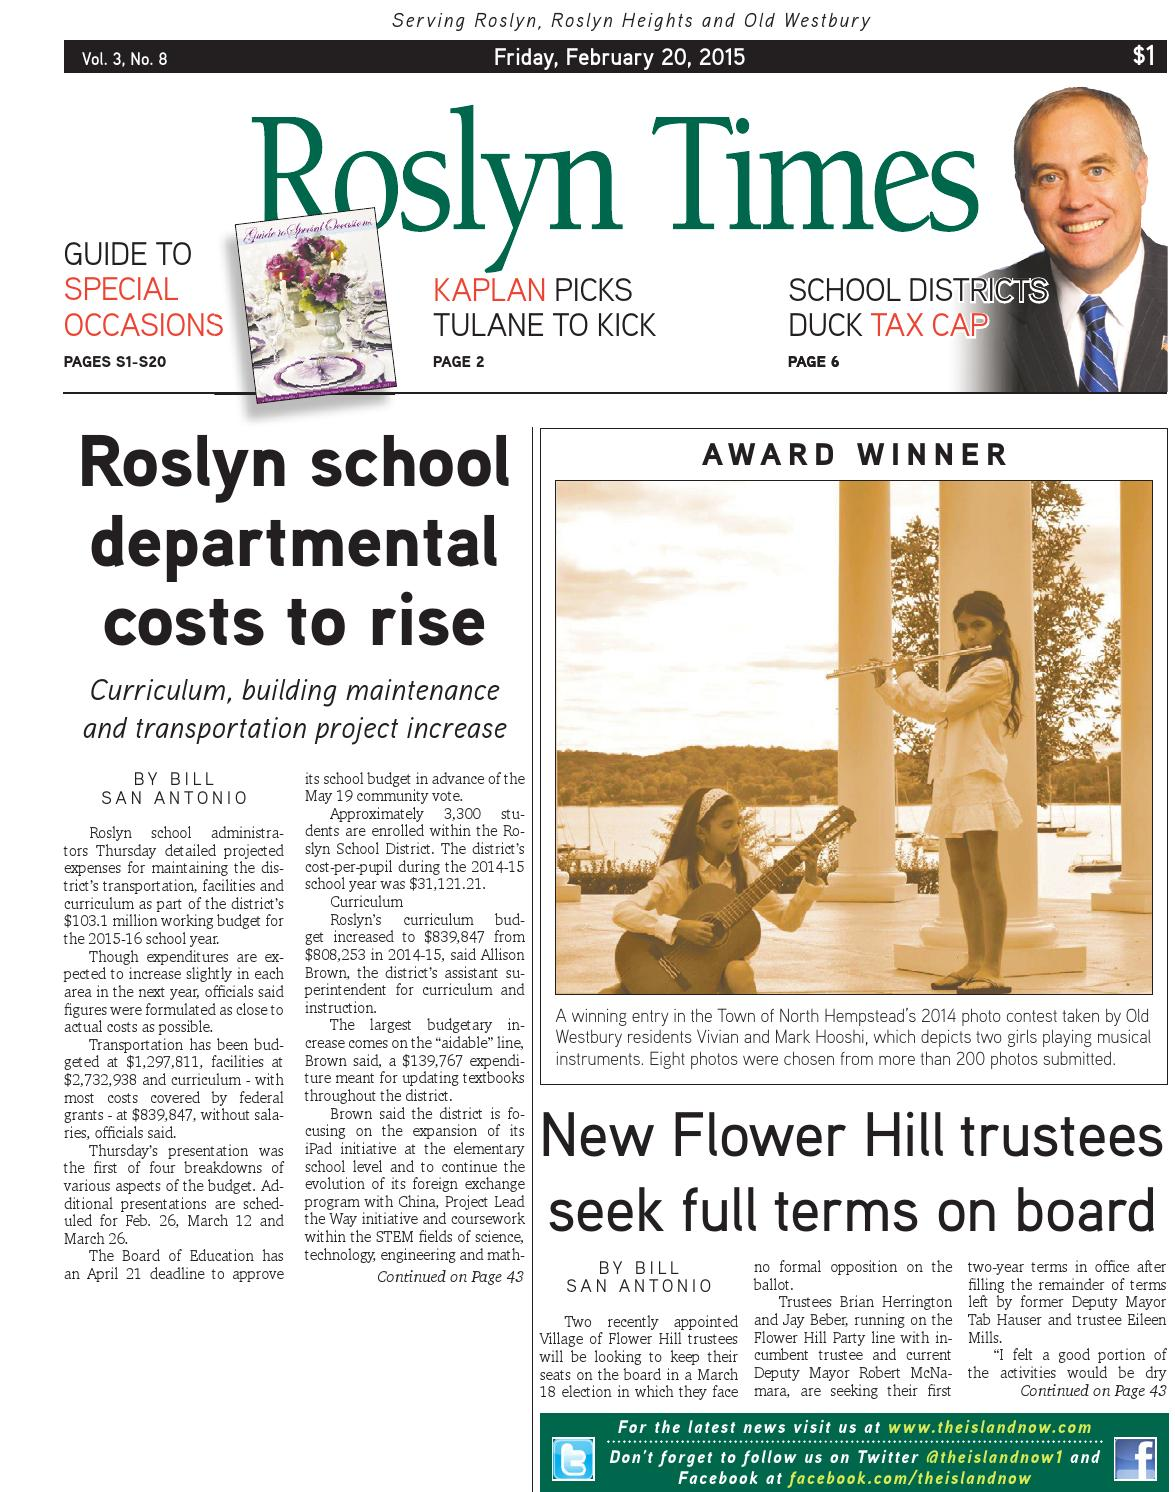 roslyn times 2.20.15 by the island now - issuu